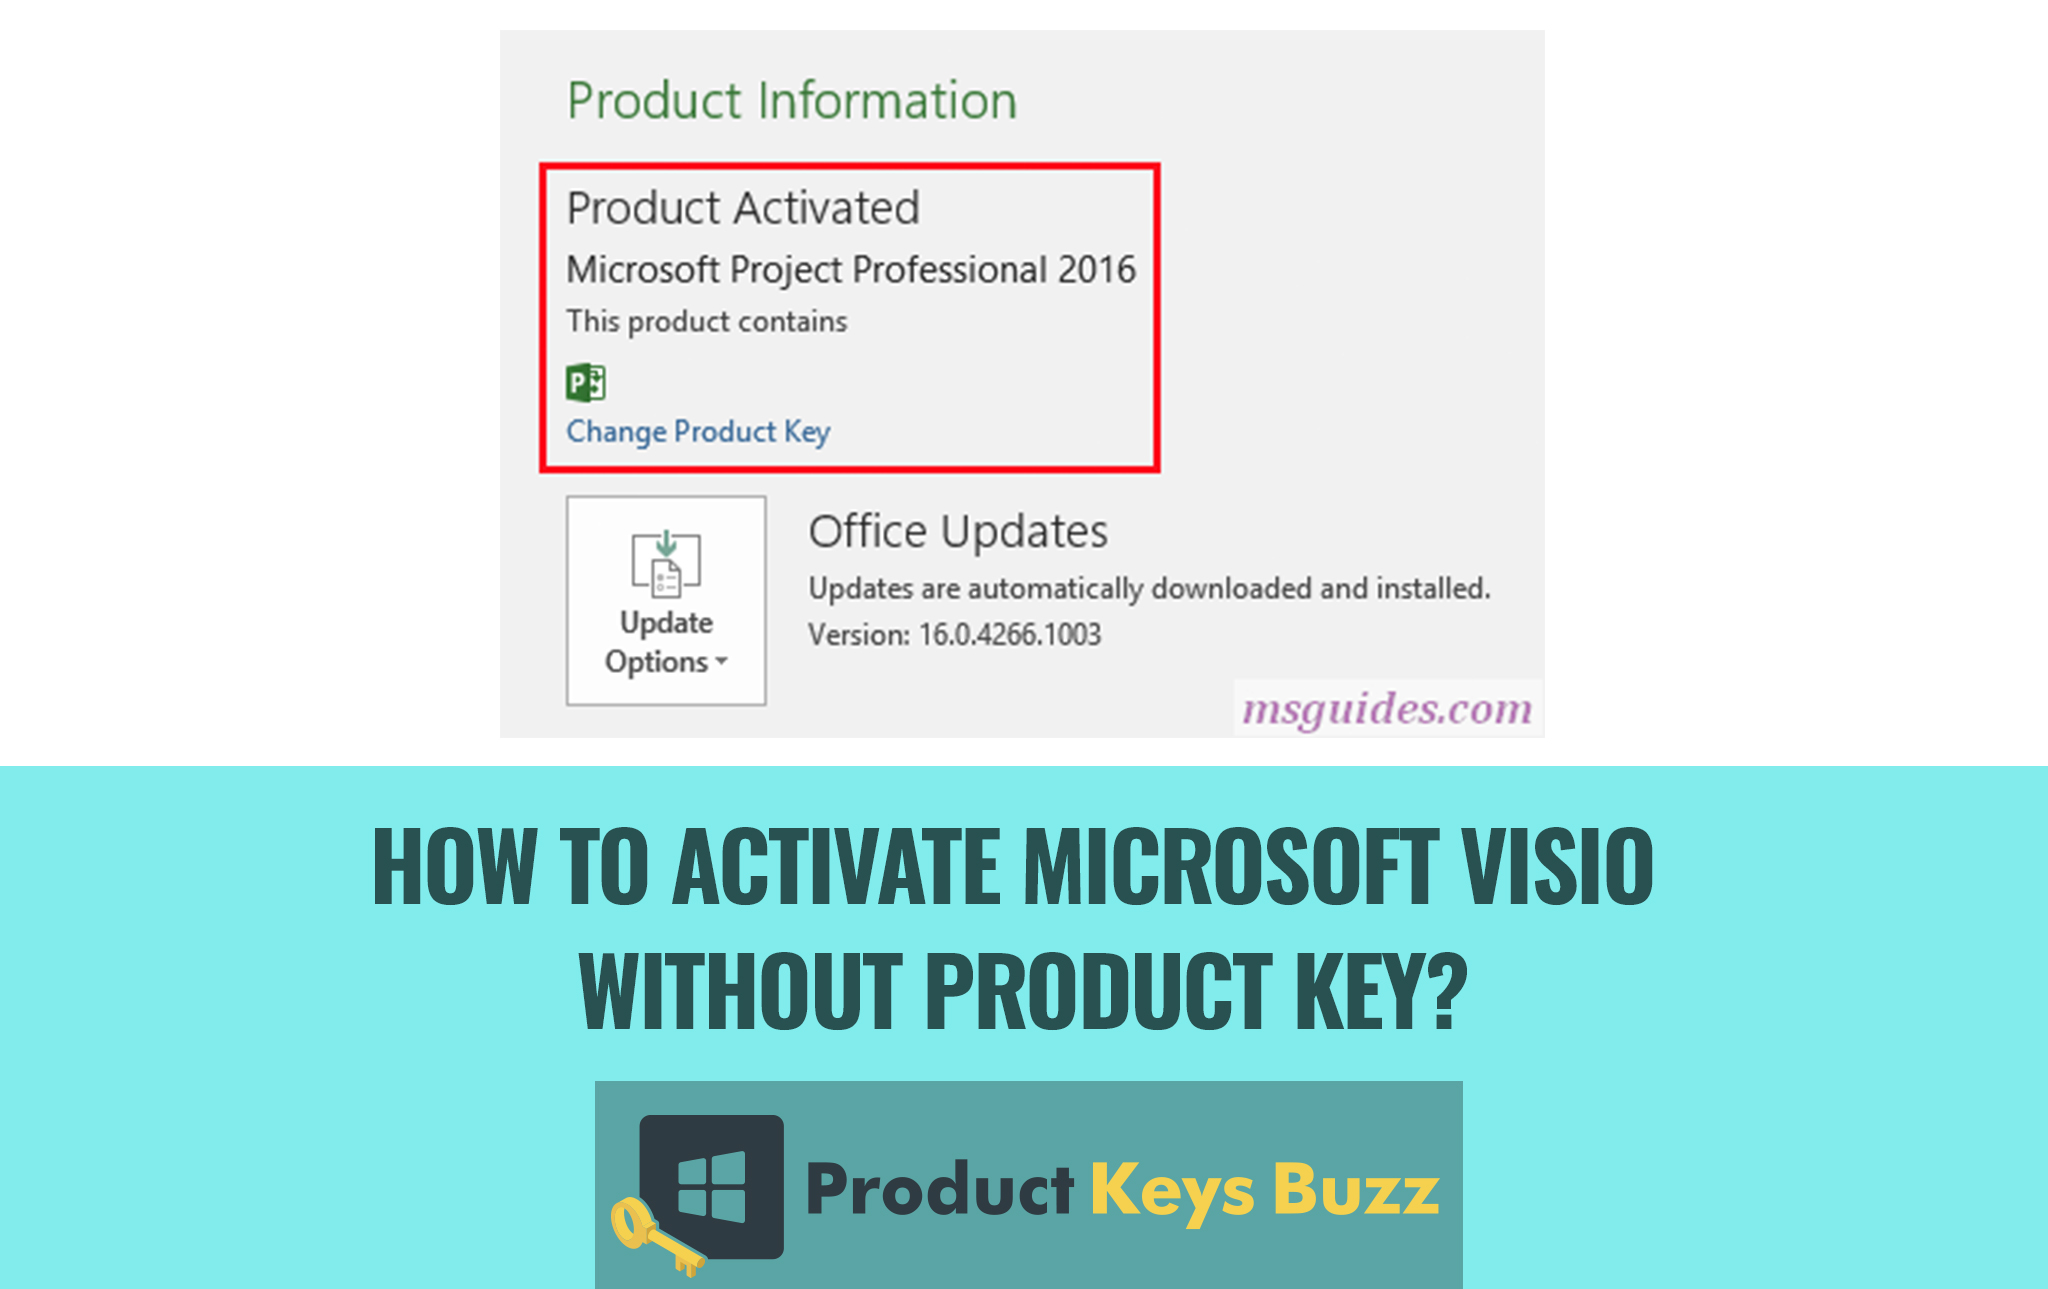 How to Activate Microsoft Visio without Product Key?